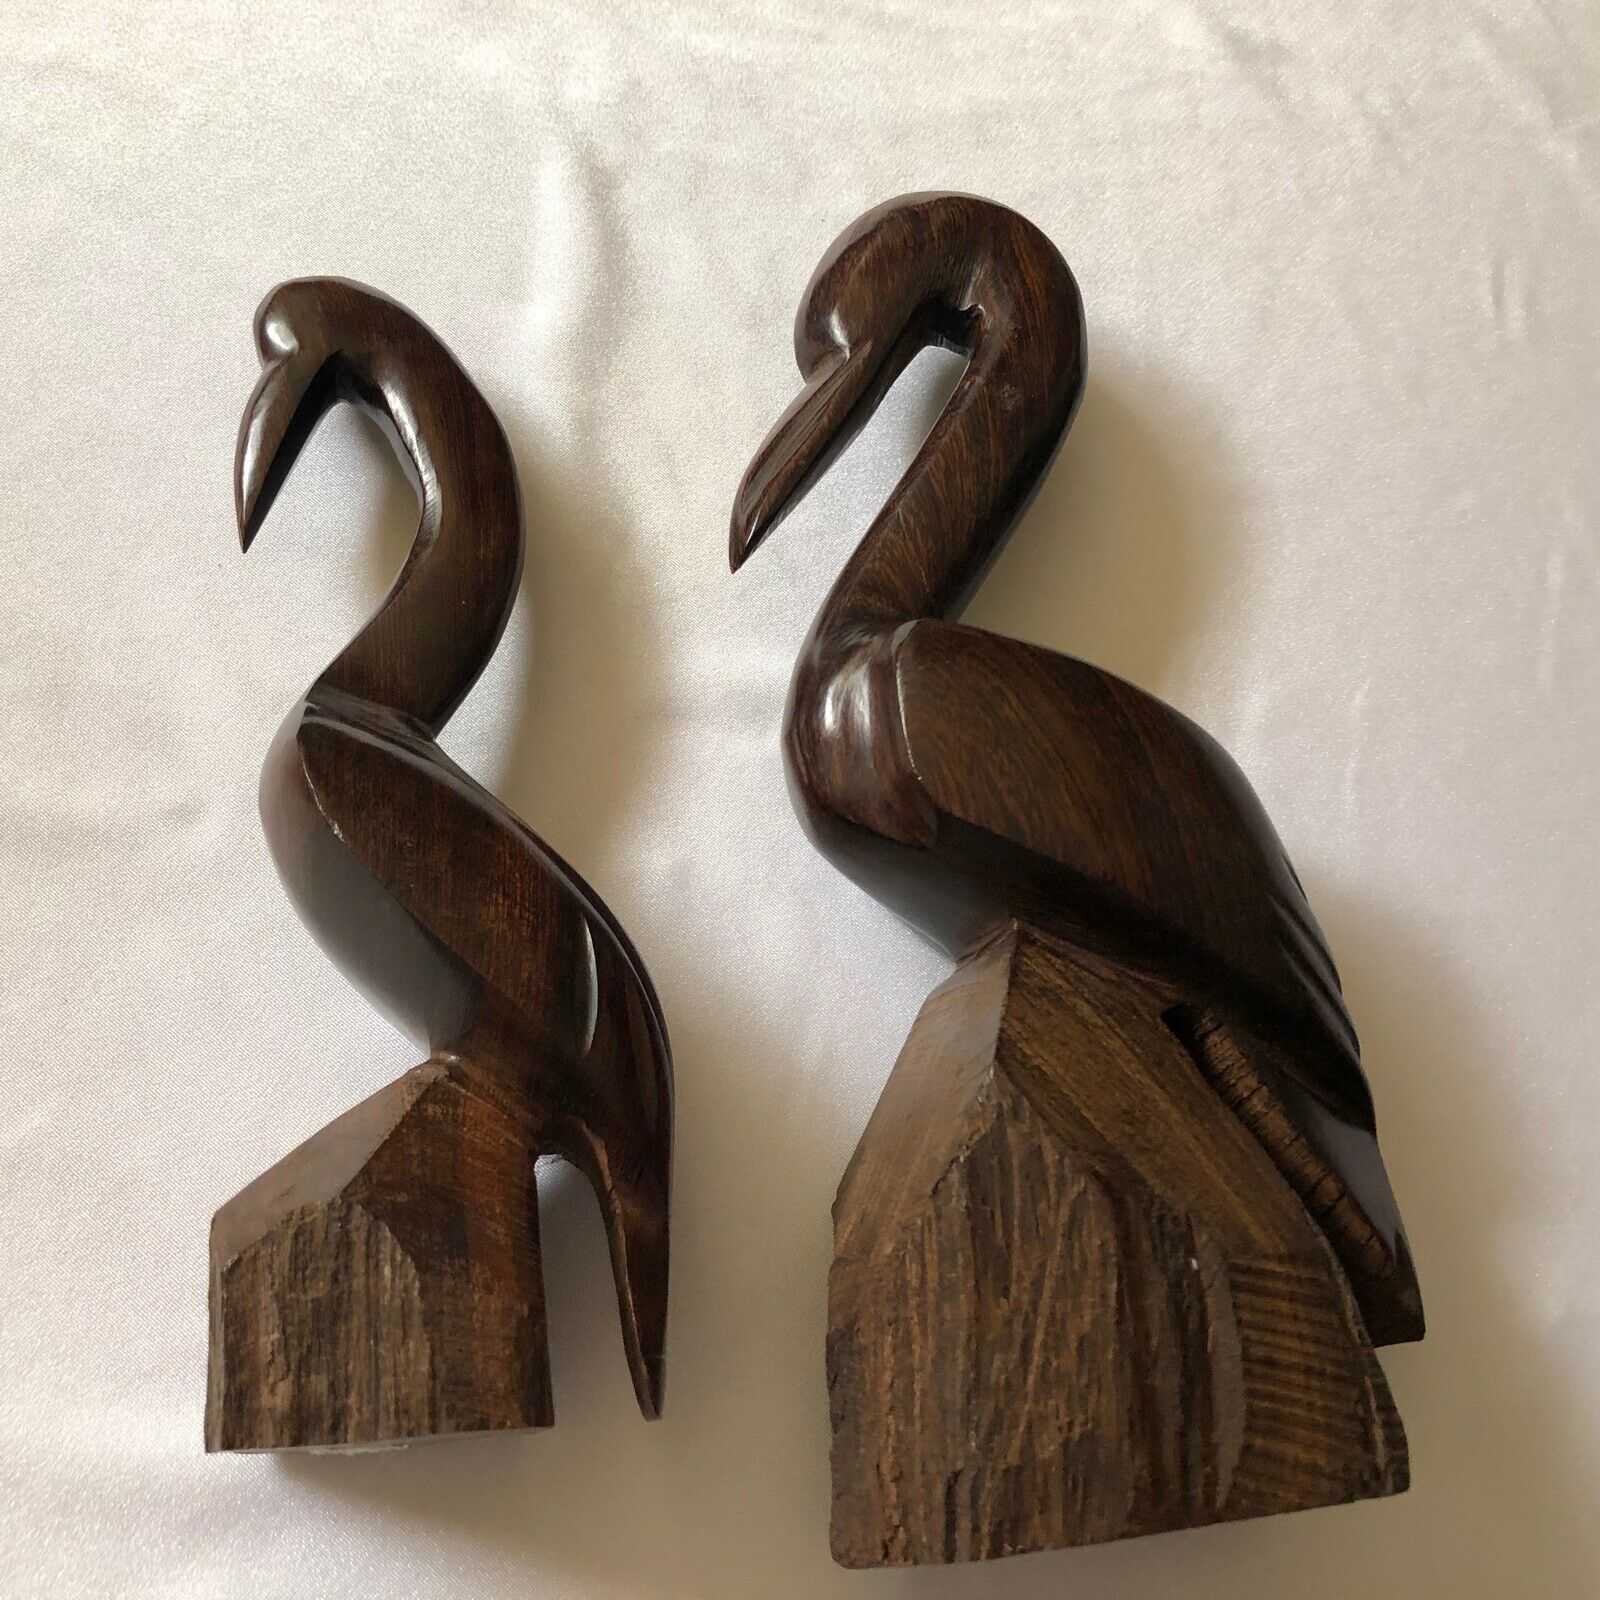 Set of 2 Pelican Wood Carving Ironwood Statue Figurines